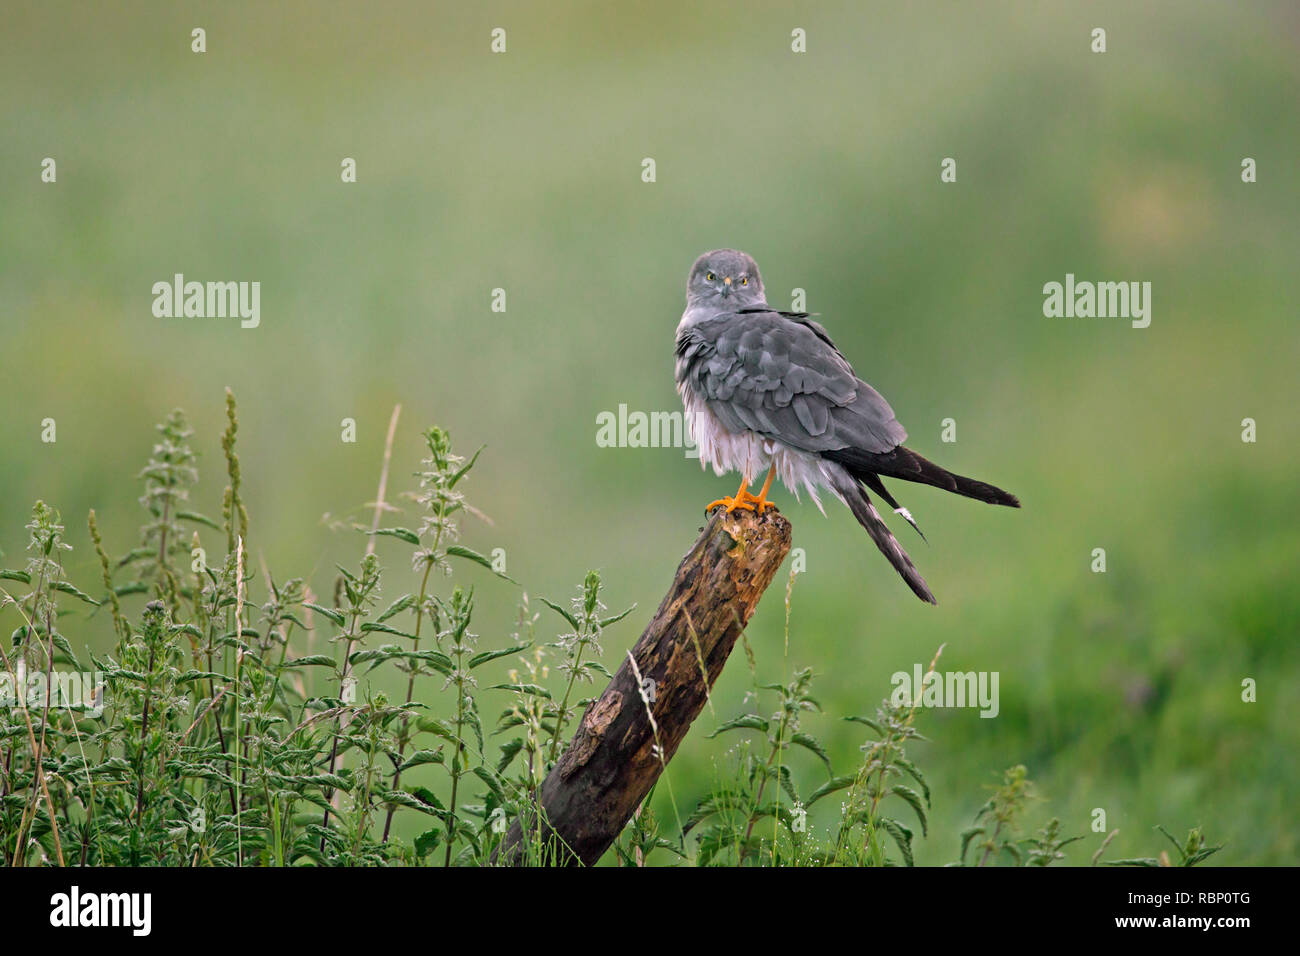 Montagu's harrier (Circus pygargus), male perched on fence post in grassland - Stock Image